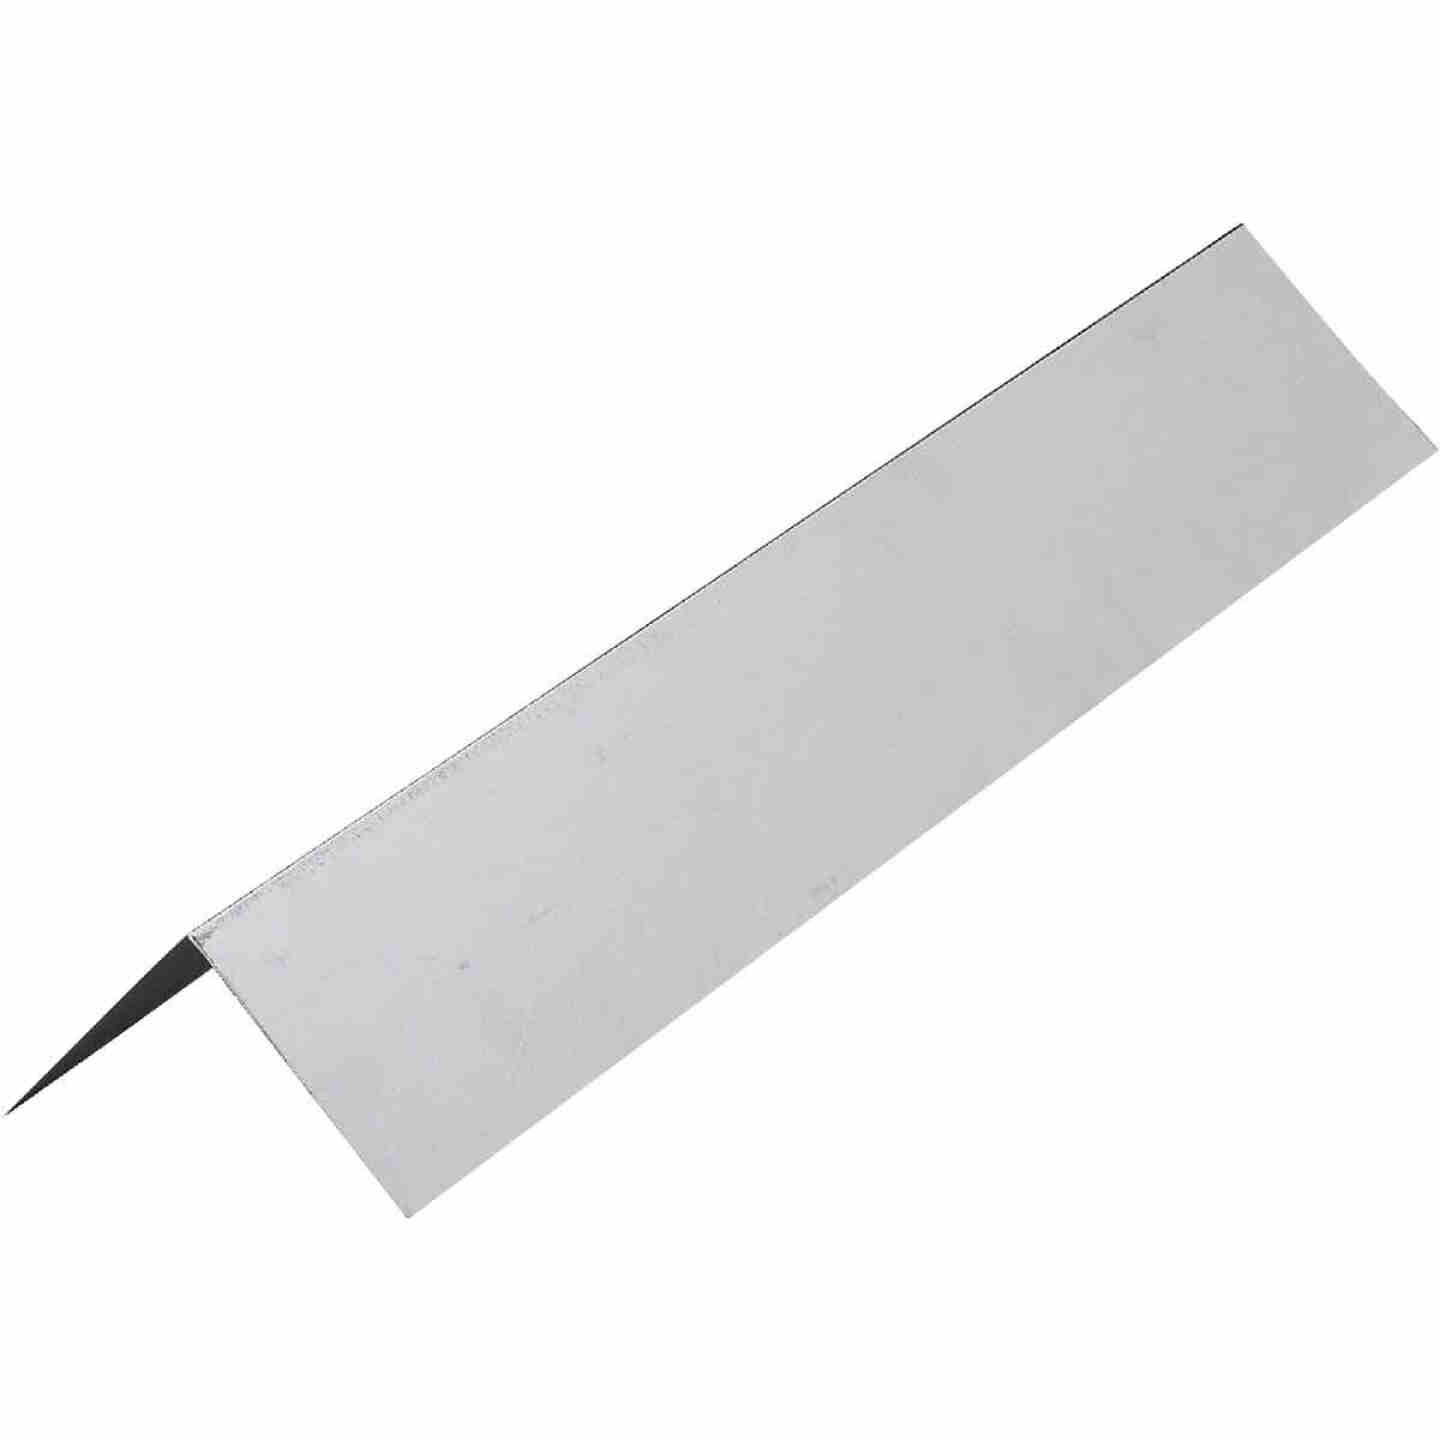 NorWesco A 1 In. X 1 In. Galvanized Steel Roof & Drip Edge Flashing Image 1